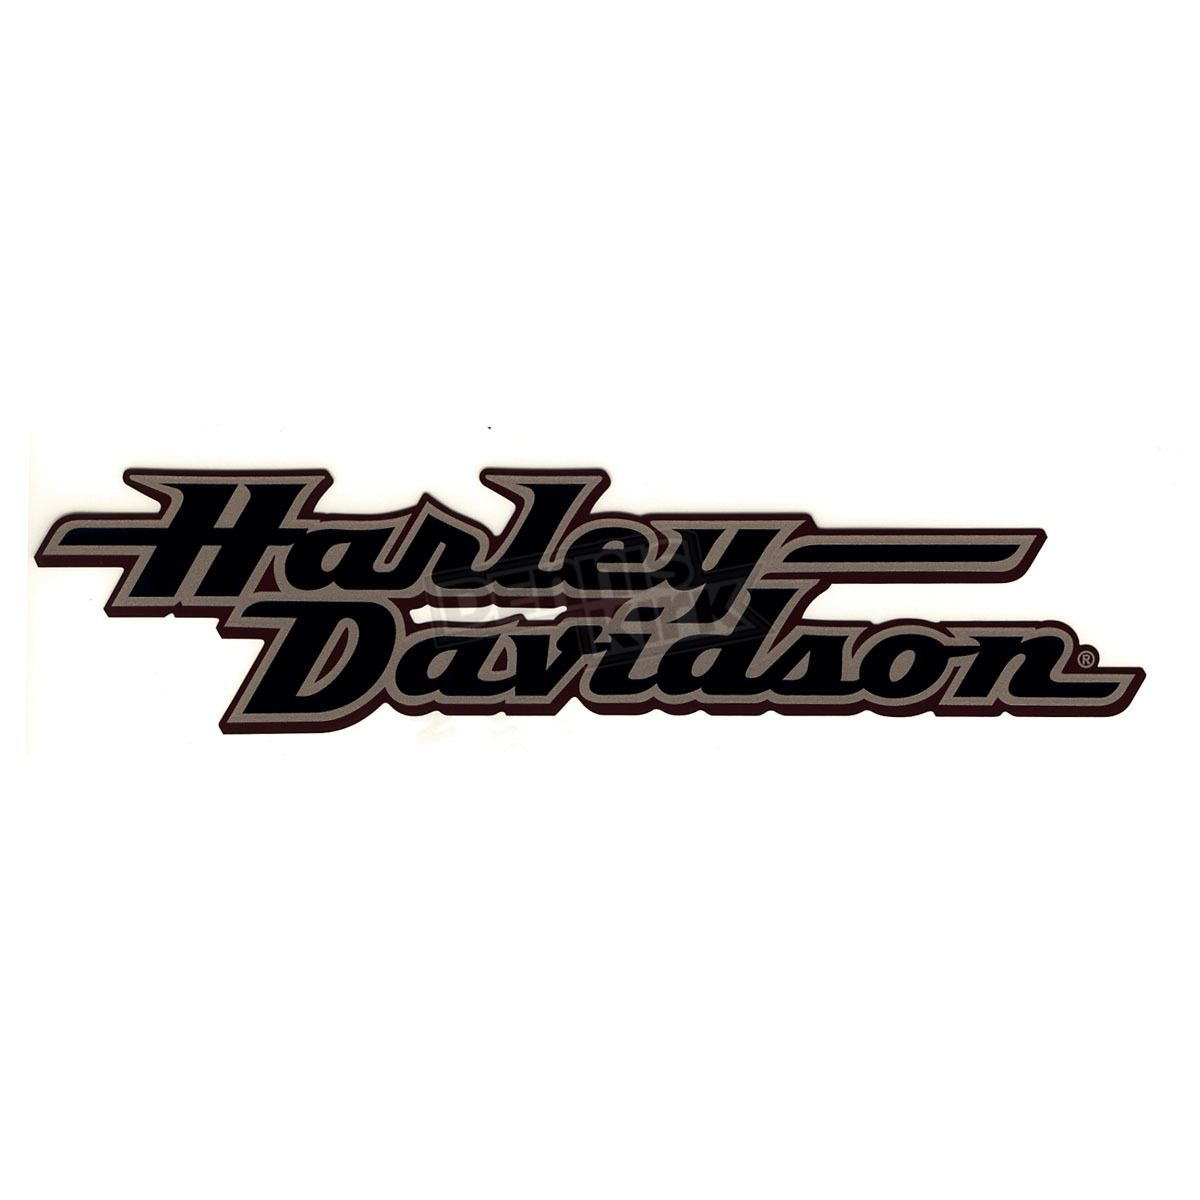 Harley Davidson Fuel Tank Decals Harley Davidson Inc Brown Black Gas Tank Decal Harley Davidson Decals Harley Davidson Logo Harley Tattoos